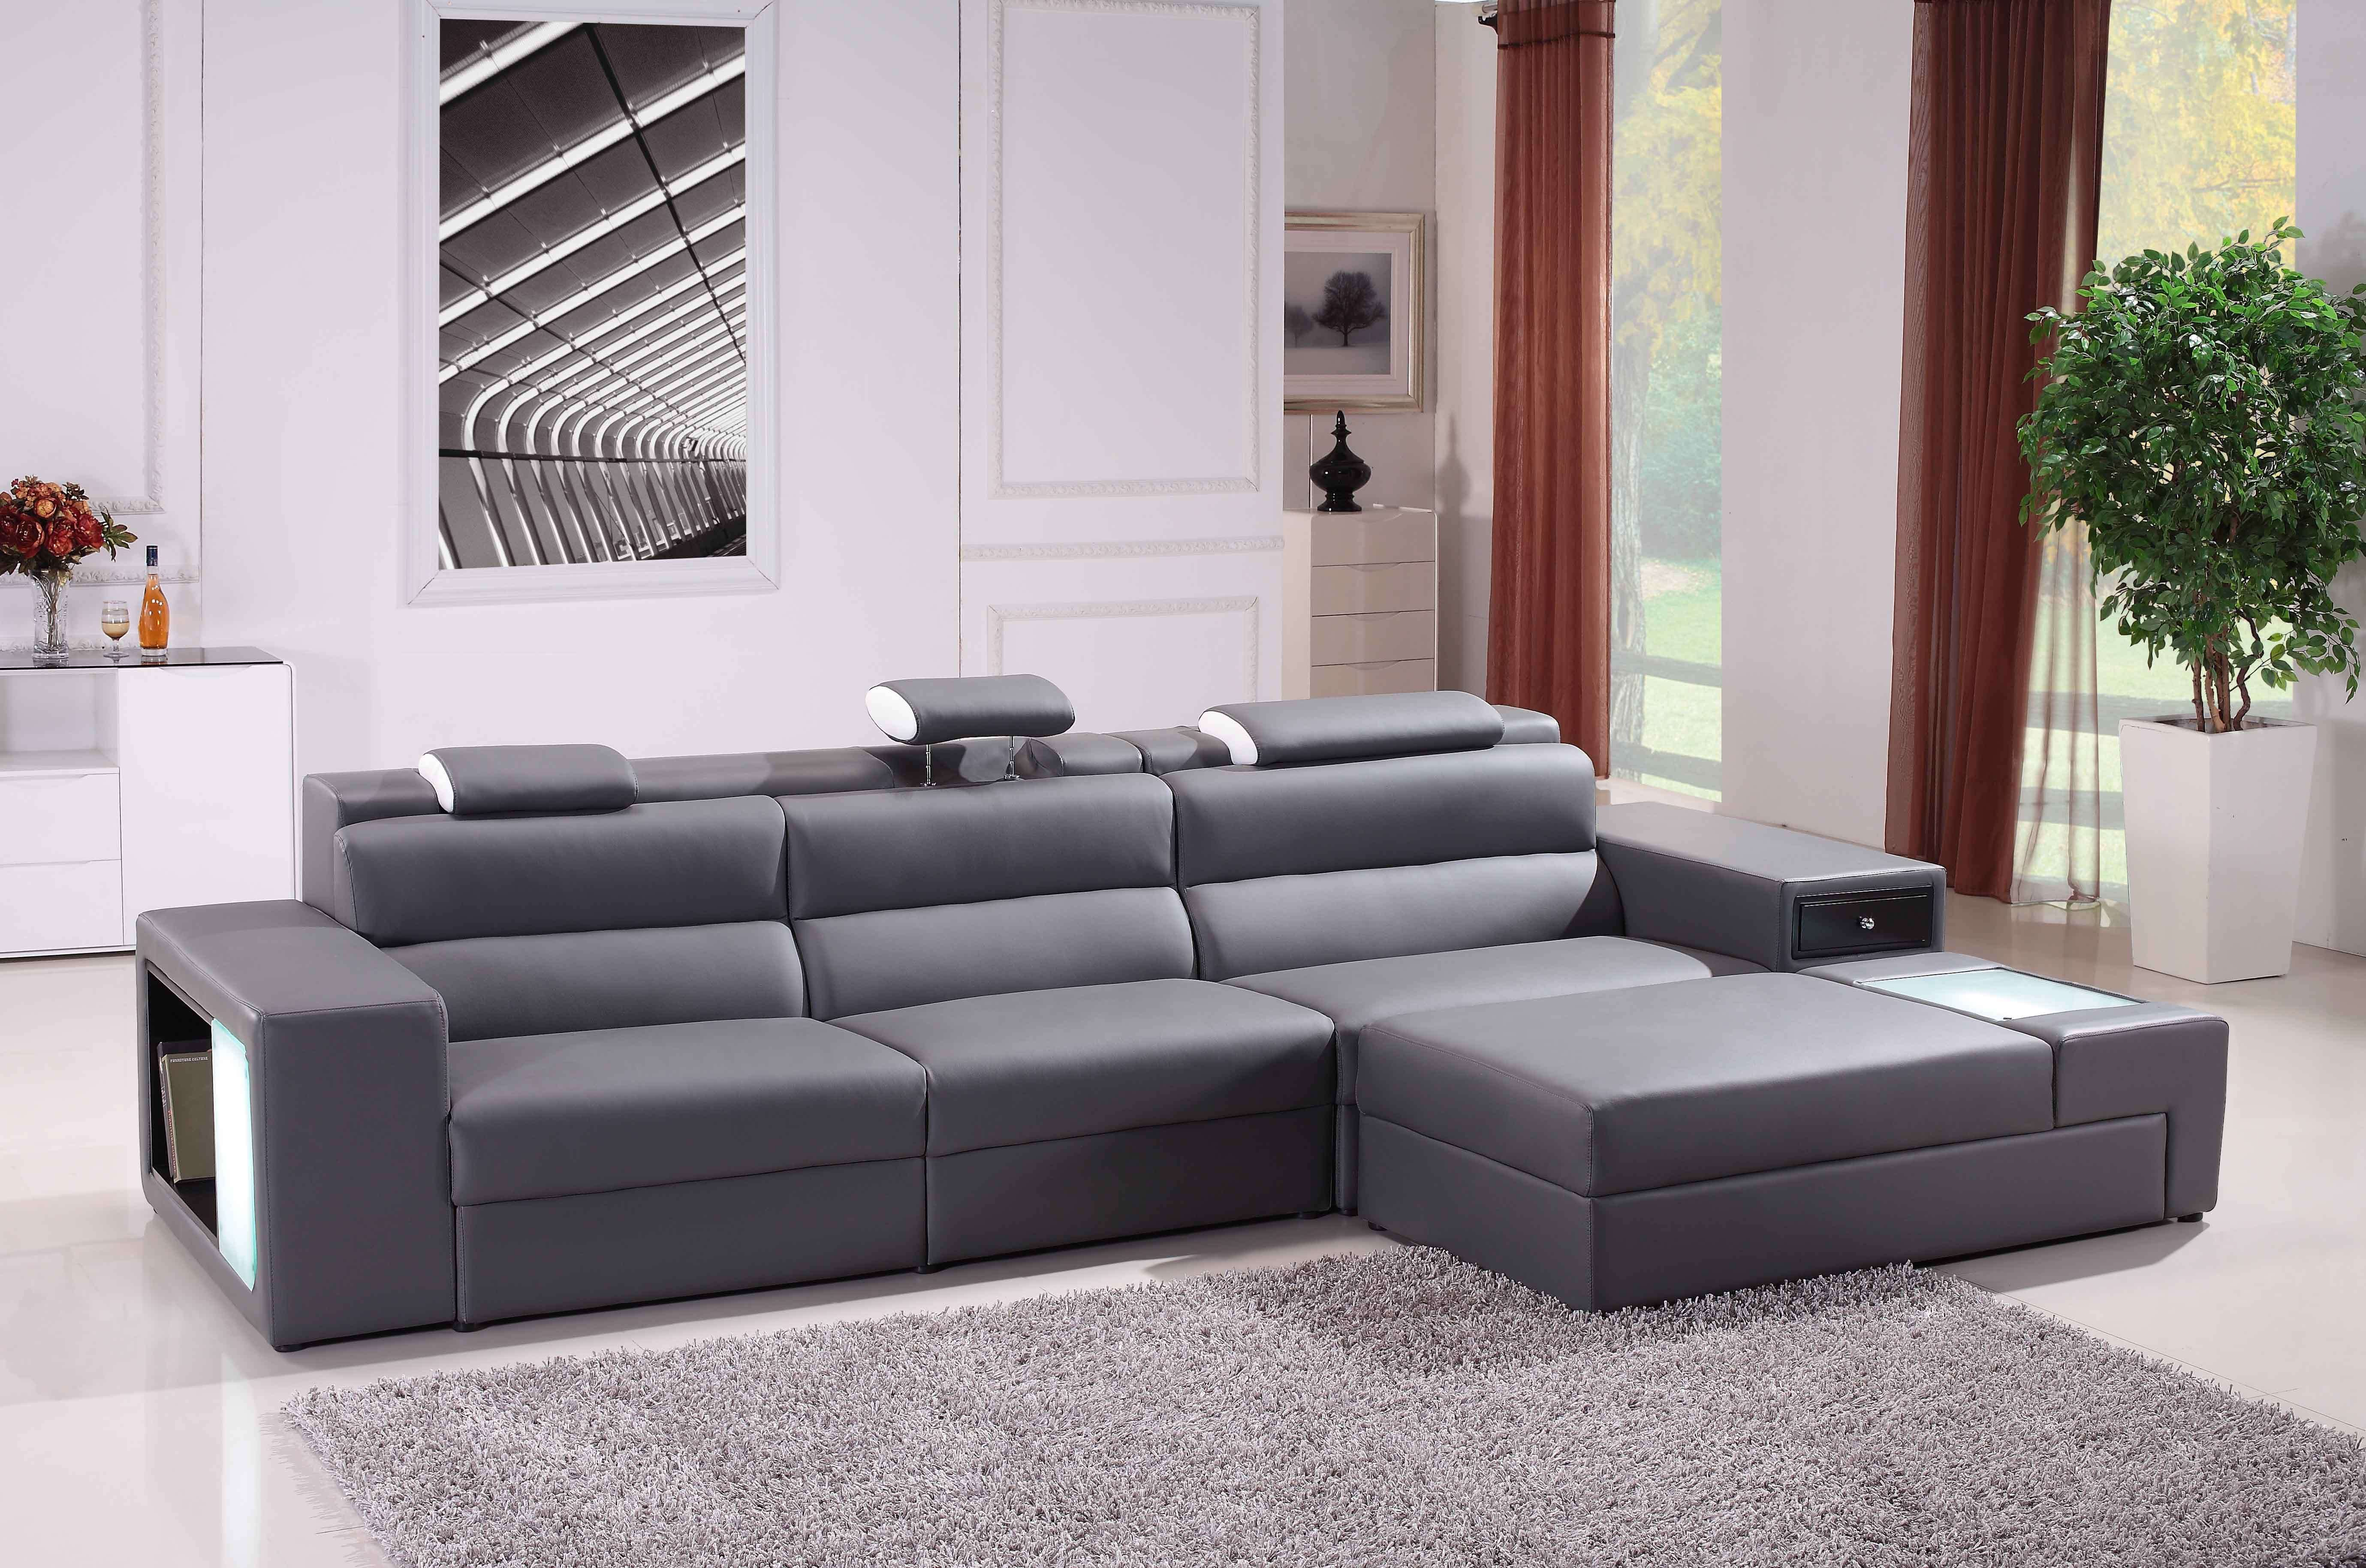 Grey Bonded Leather Sectional Sofa Modern Sofas Living Room